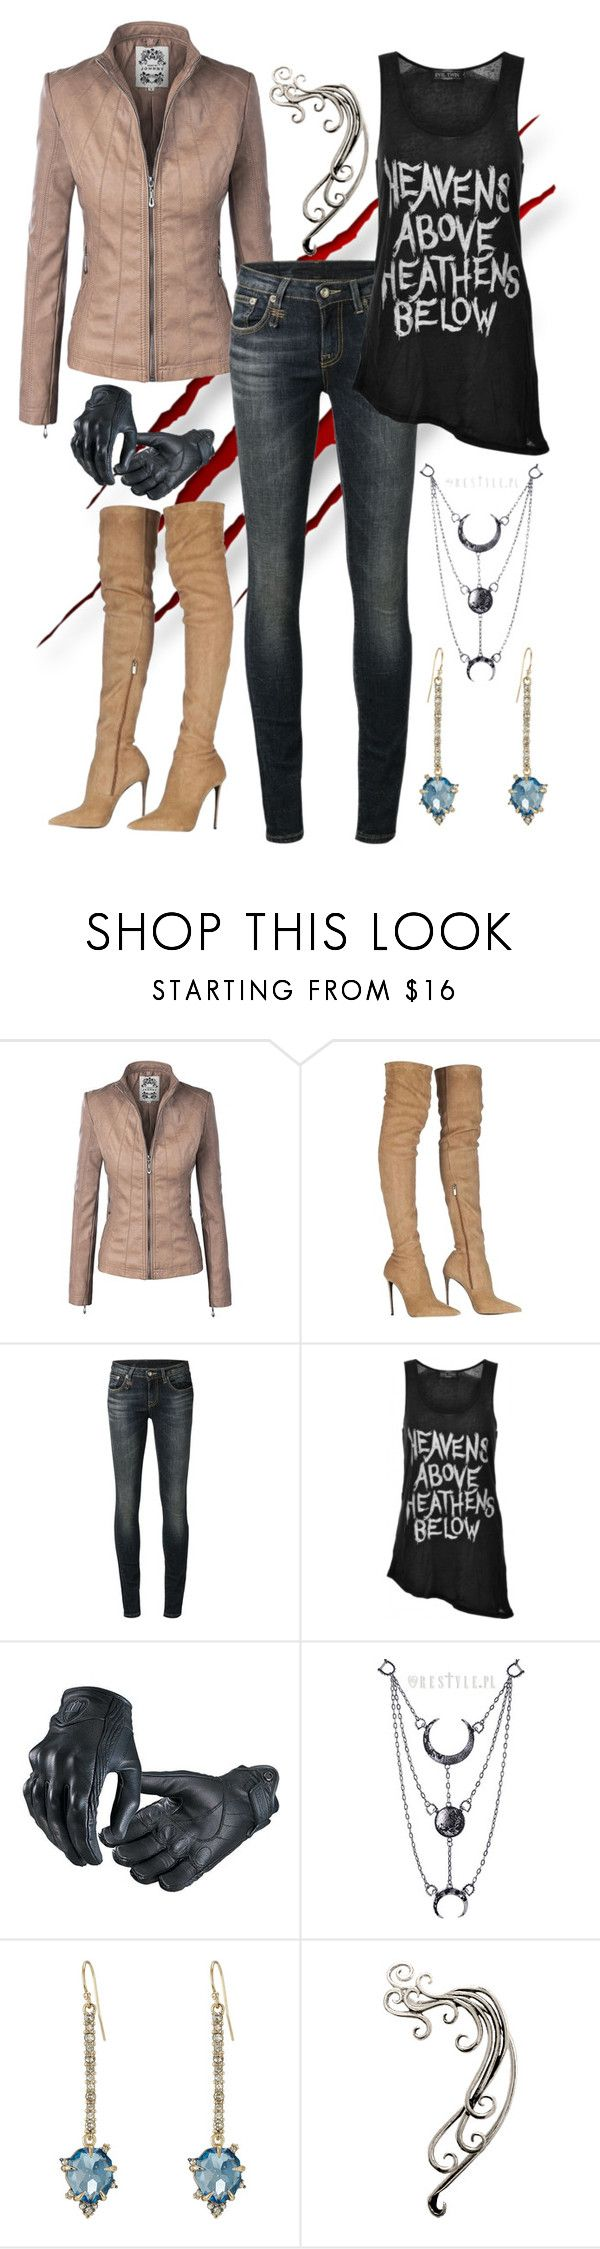 """""""Untitled #1012"""" by pandoraslittlebox ❤ liked on Polyvore featuring Roberto Cavalli, R13, Evil Twin and Alexis Bittar"""